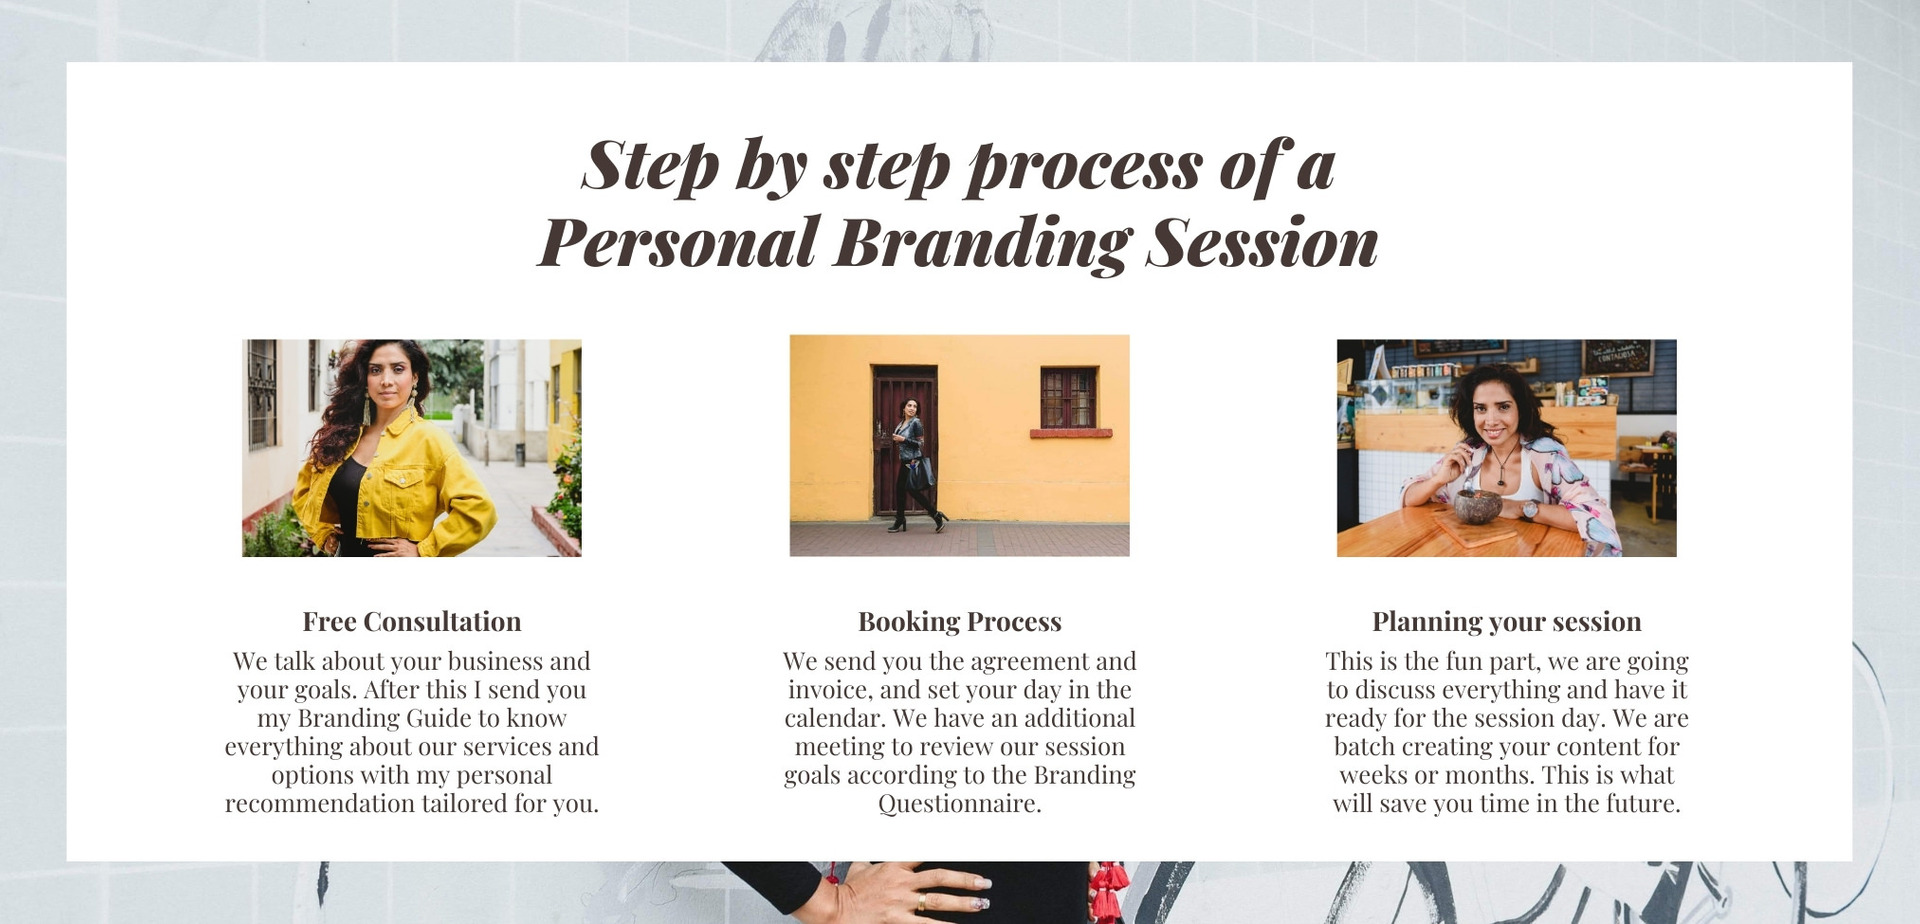 Step by Step process of a Personal Branding Session